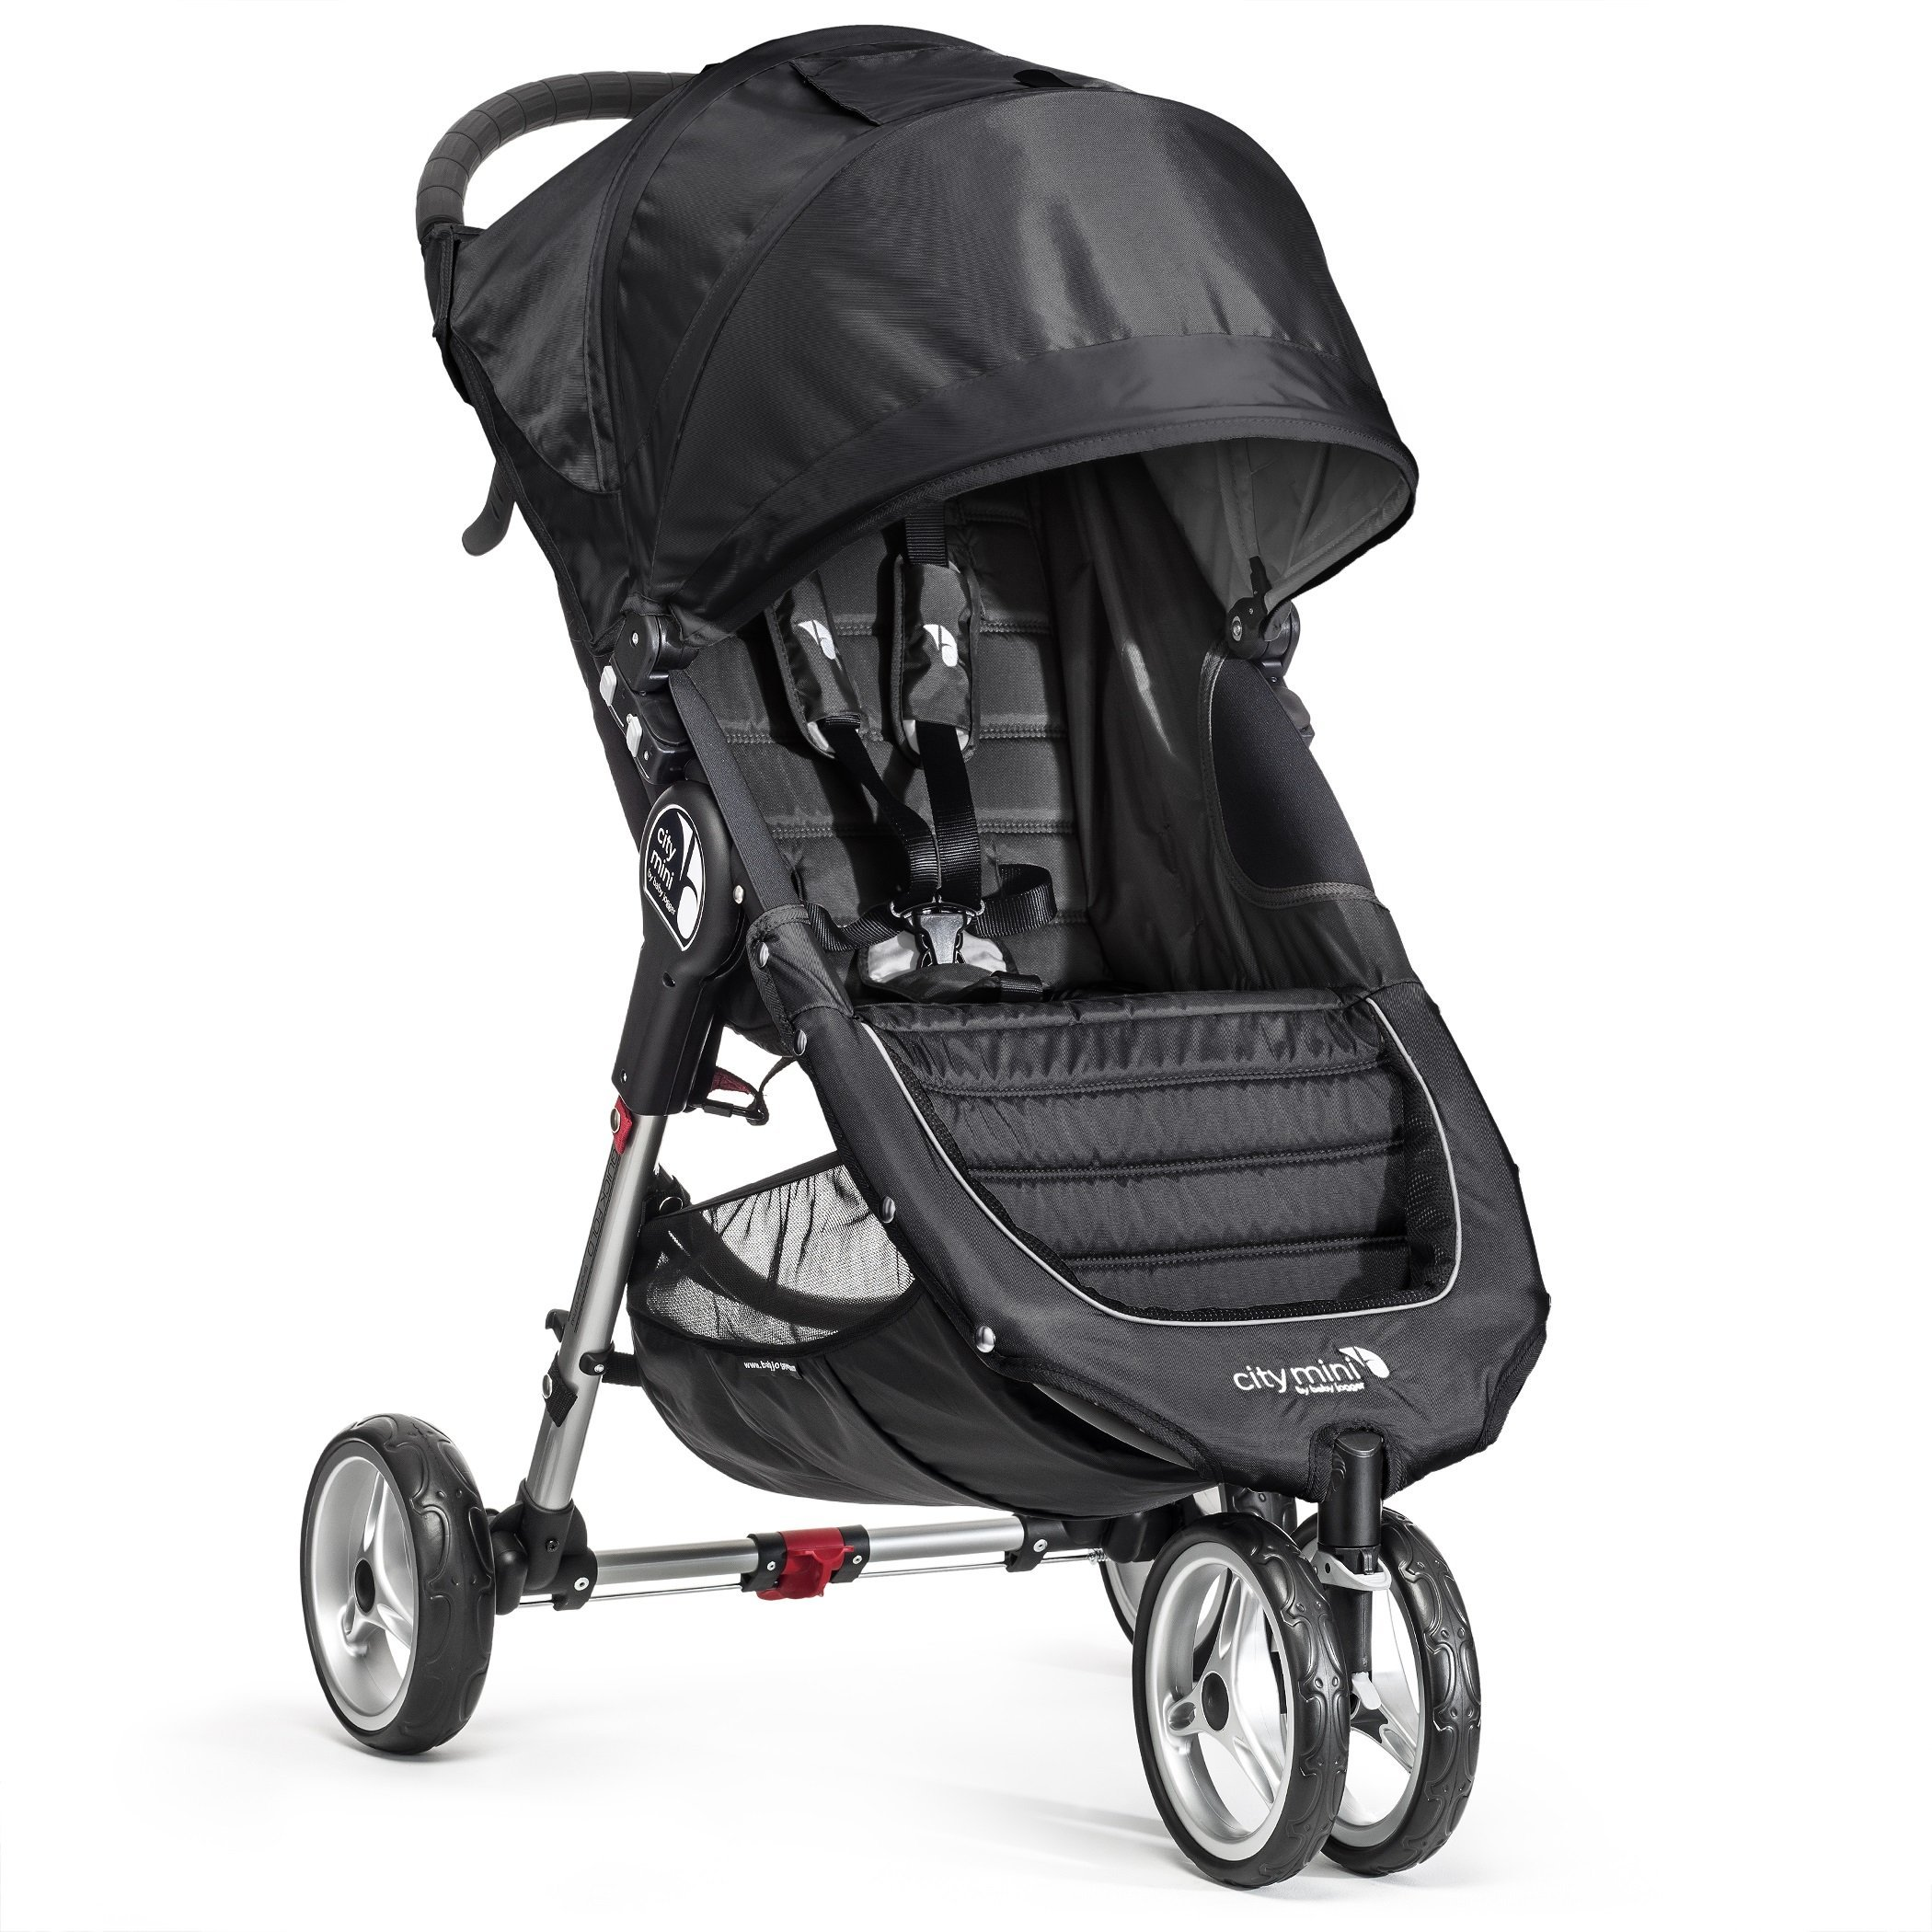 Baby Jogger City Mini Stroller In Black, Gray Frame by Baby Jogger (Image #1)